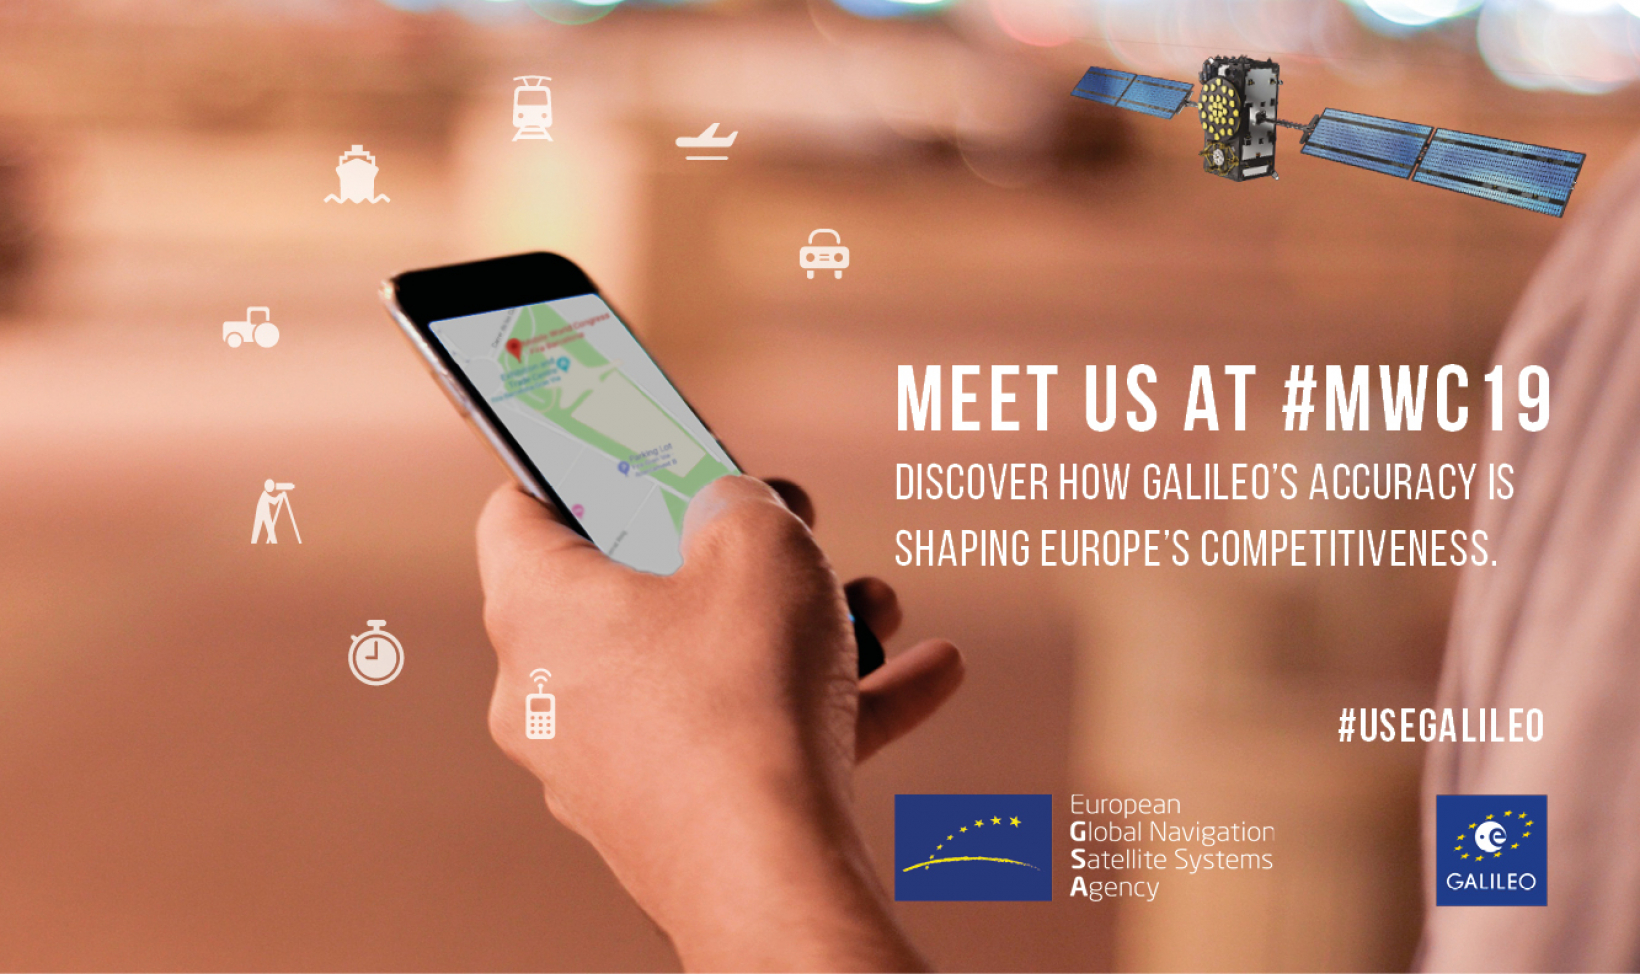 The Galileo Booth at MWC 2019 will showcase several Horizon 2020 funded, Galileo-based innovations.